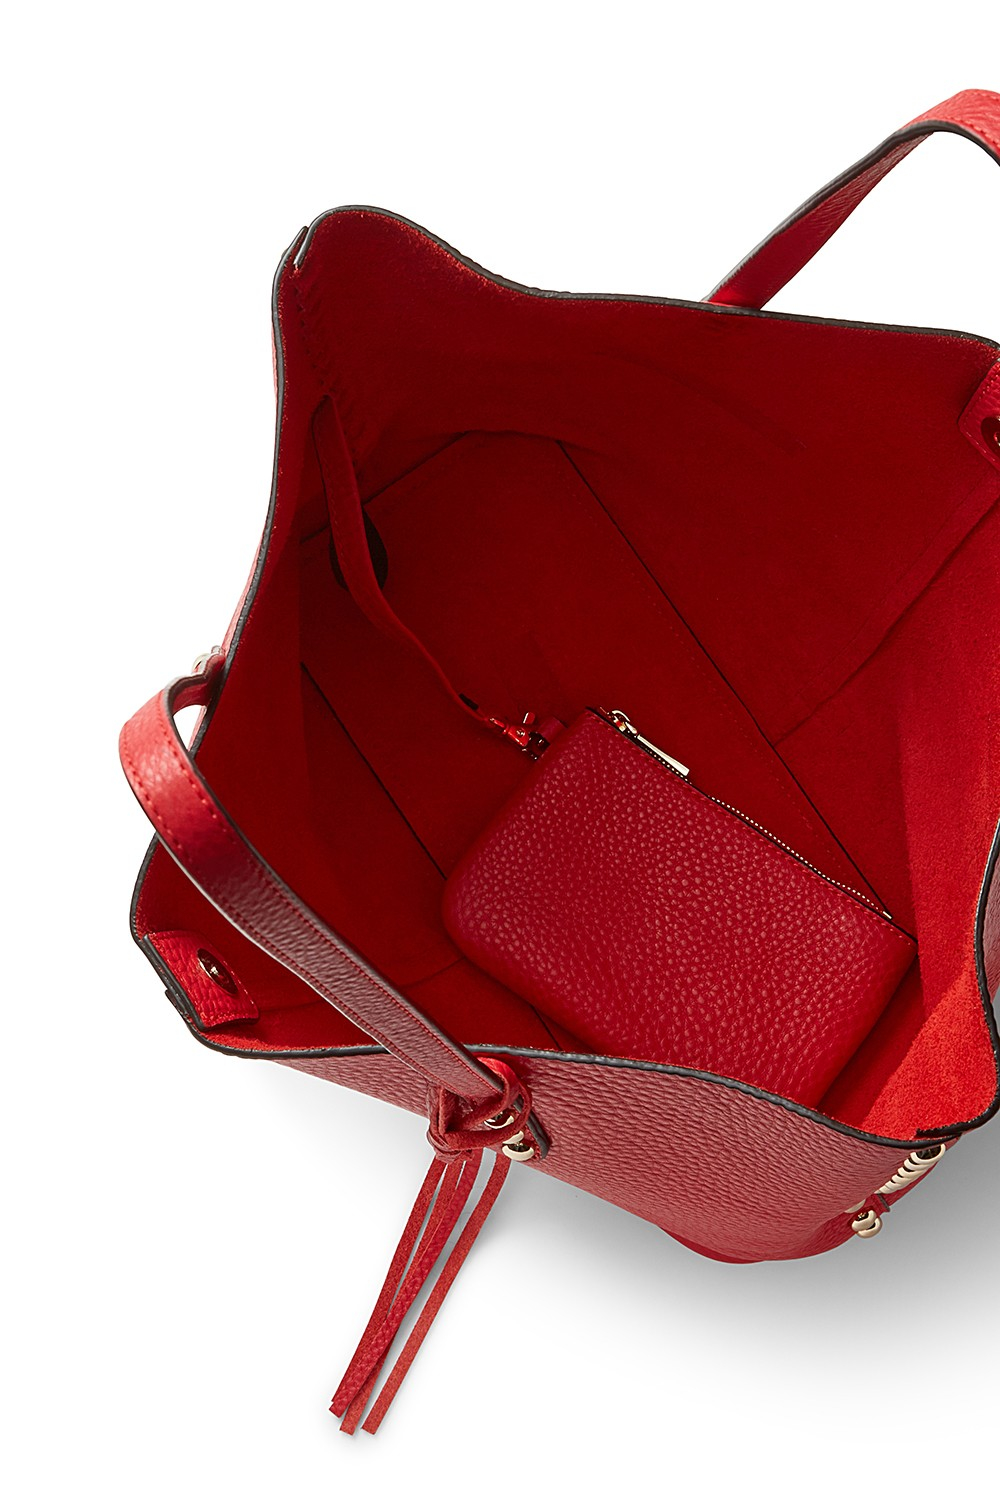 Rebecca Minkoff Leather Unlined Tote in Cherry (Red)